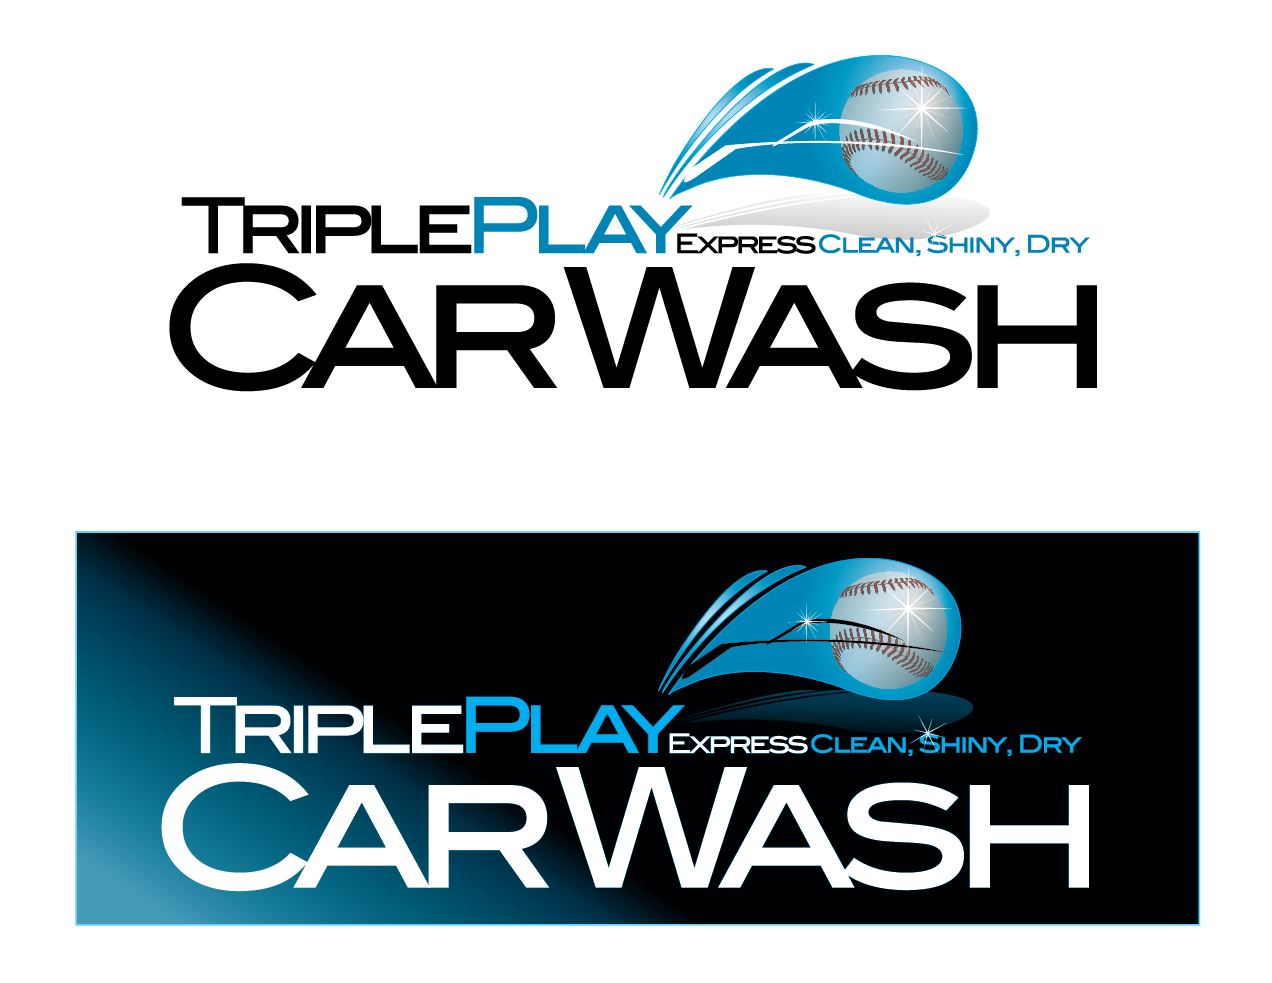 Elegant, Playful Logo Design for Triple Play Express Car Wash by ...